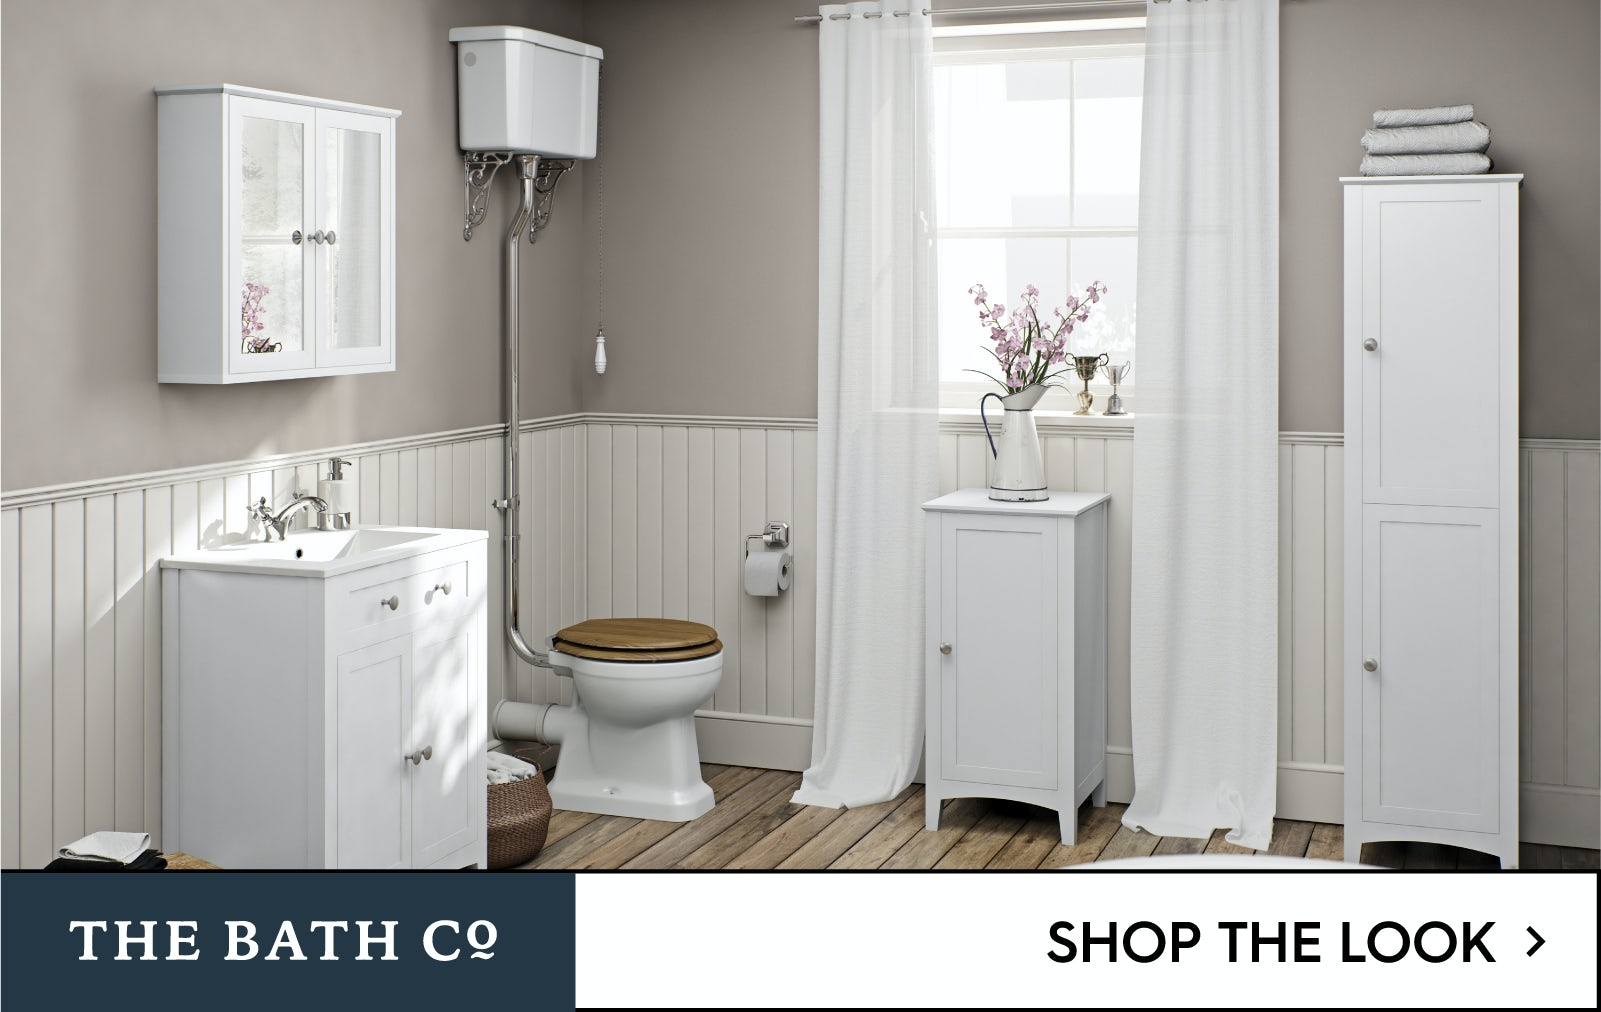 The Bath Co. - shop the look